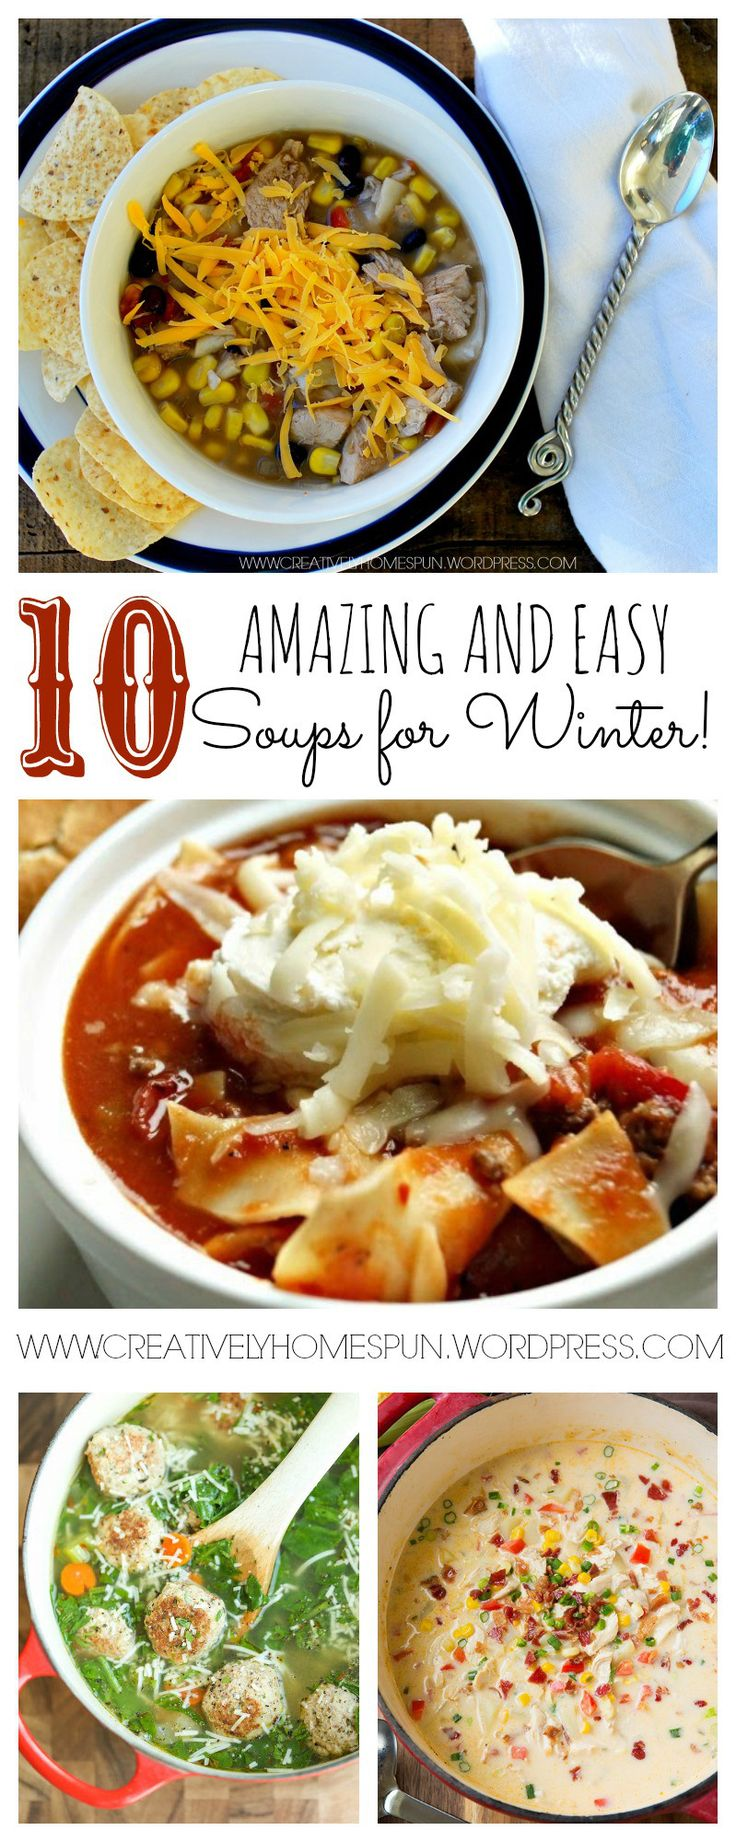 10 Amazing Soup Recipes!!! Great for the upcoming winter!! #comfortfood #soup #dinner #easymeal